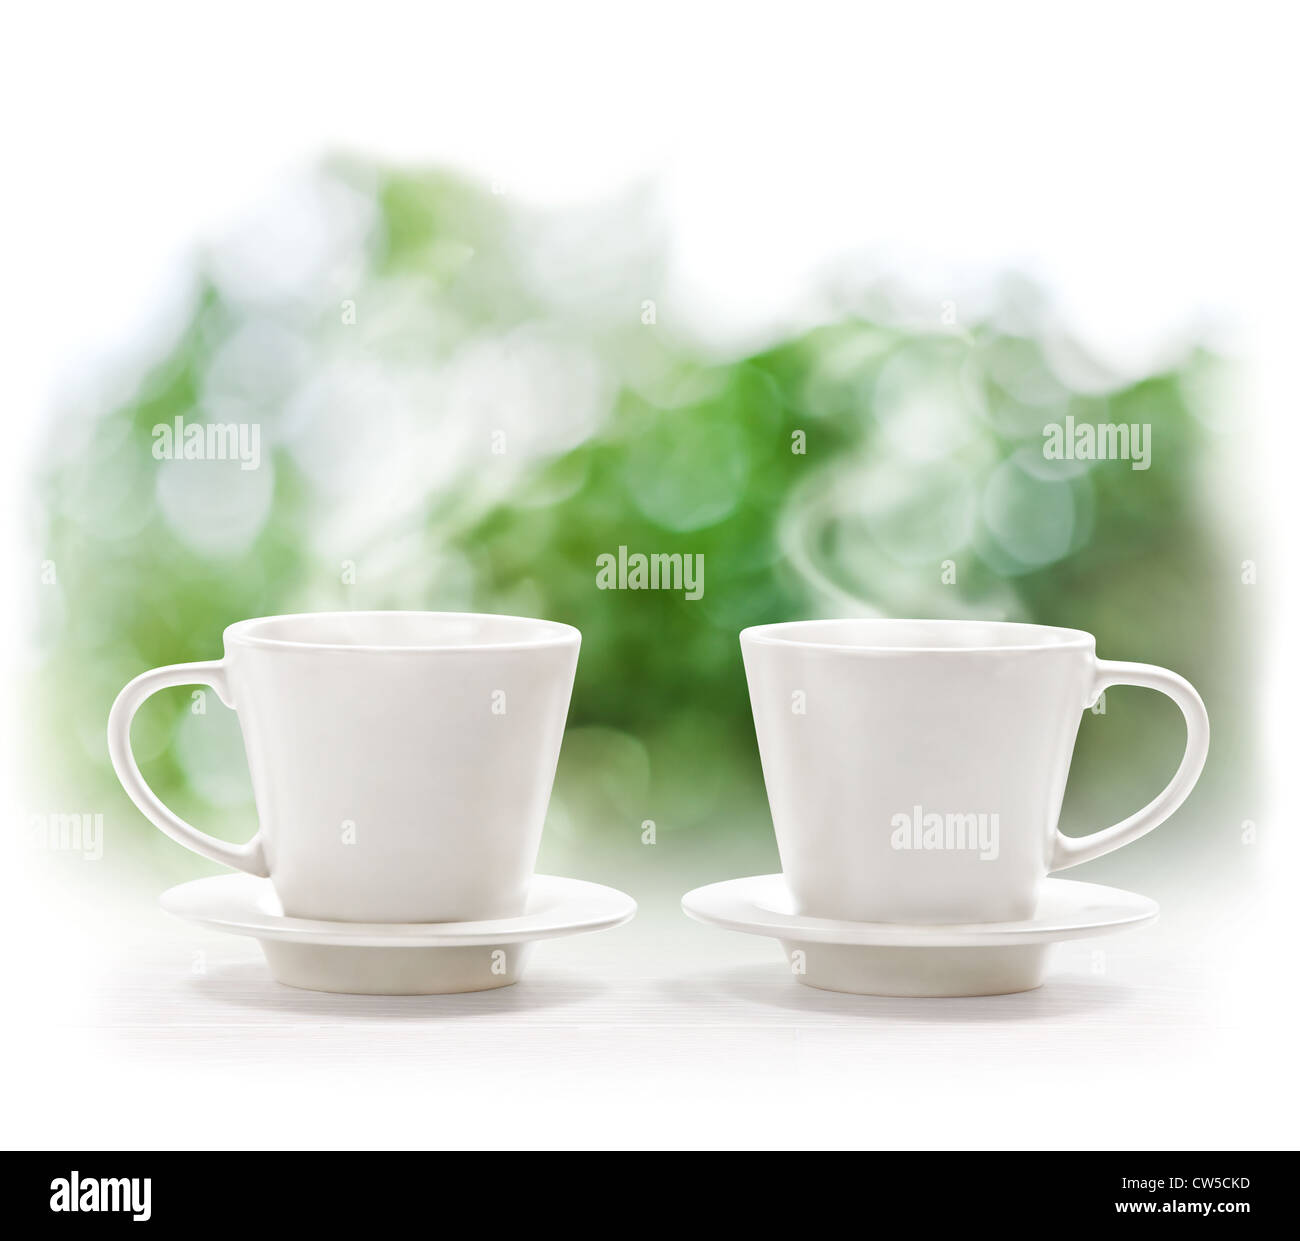 Cups of hot drink on defocus summer background - Stock Image